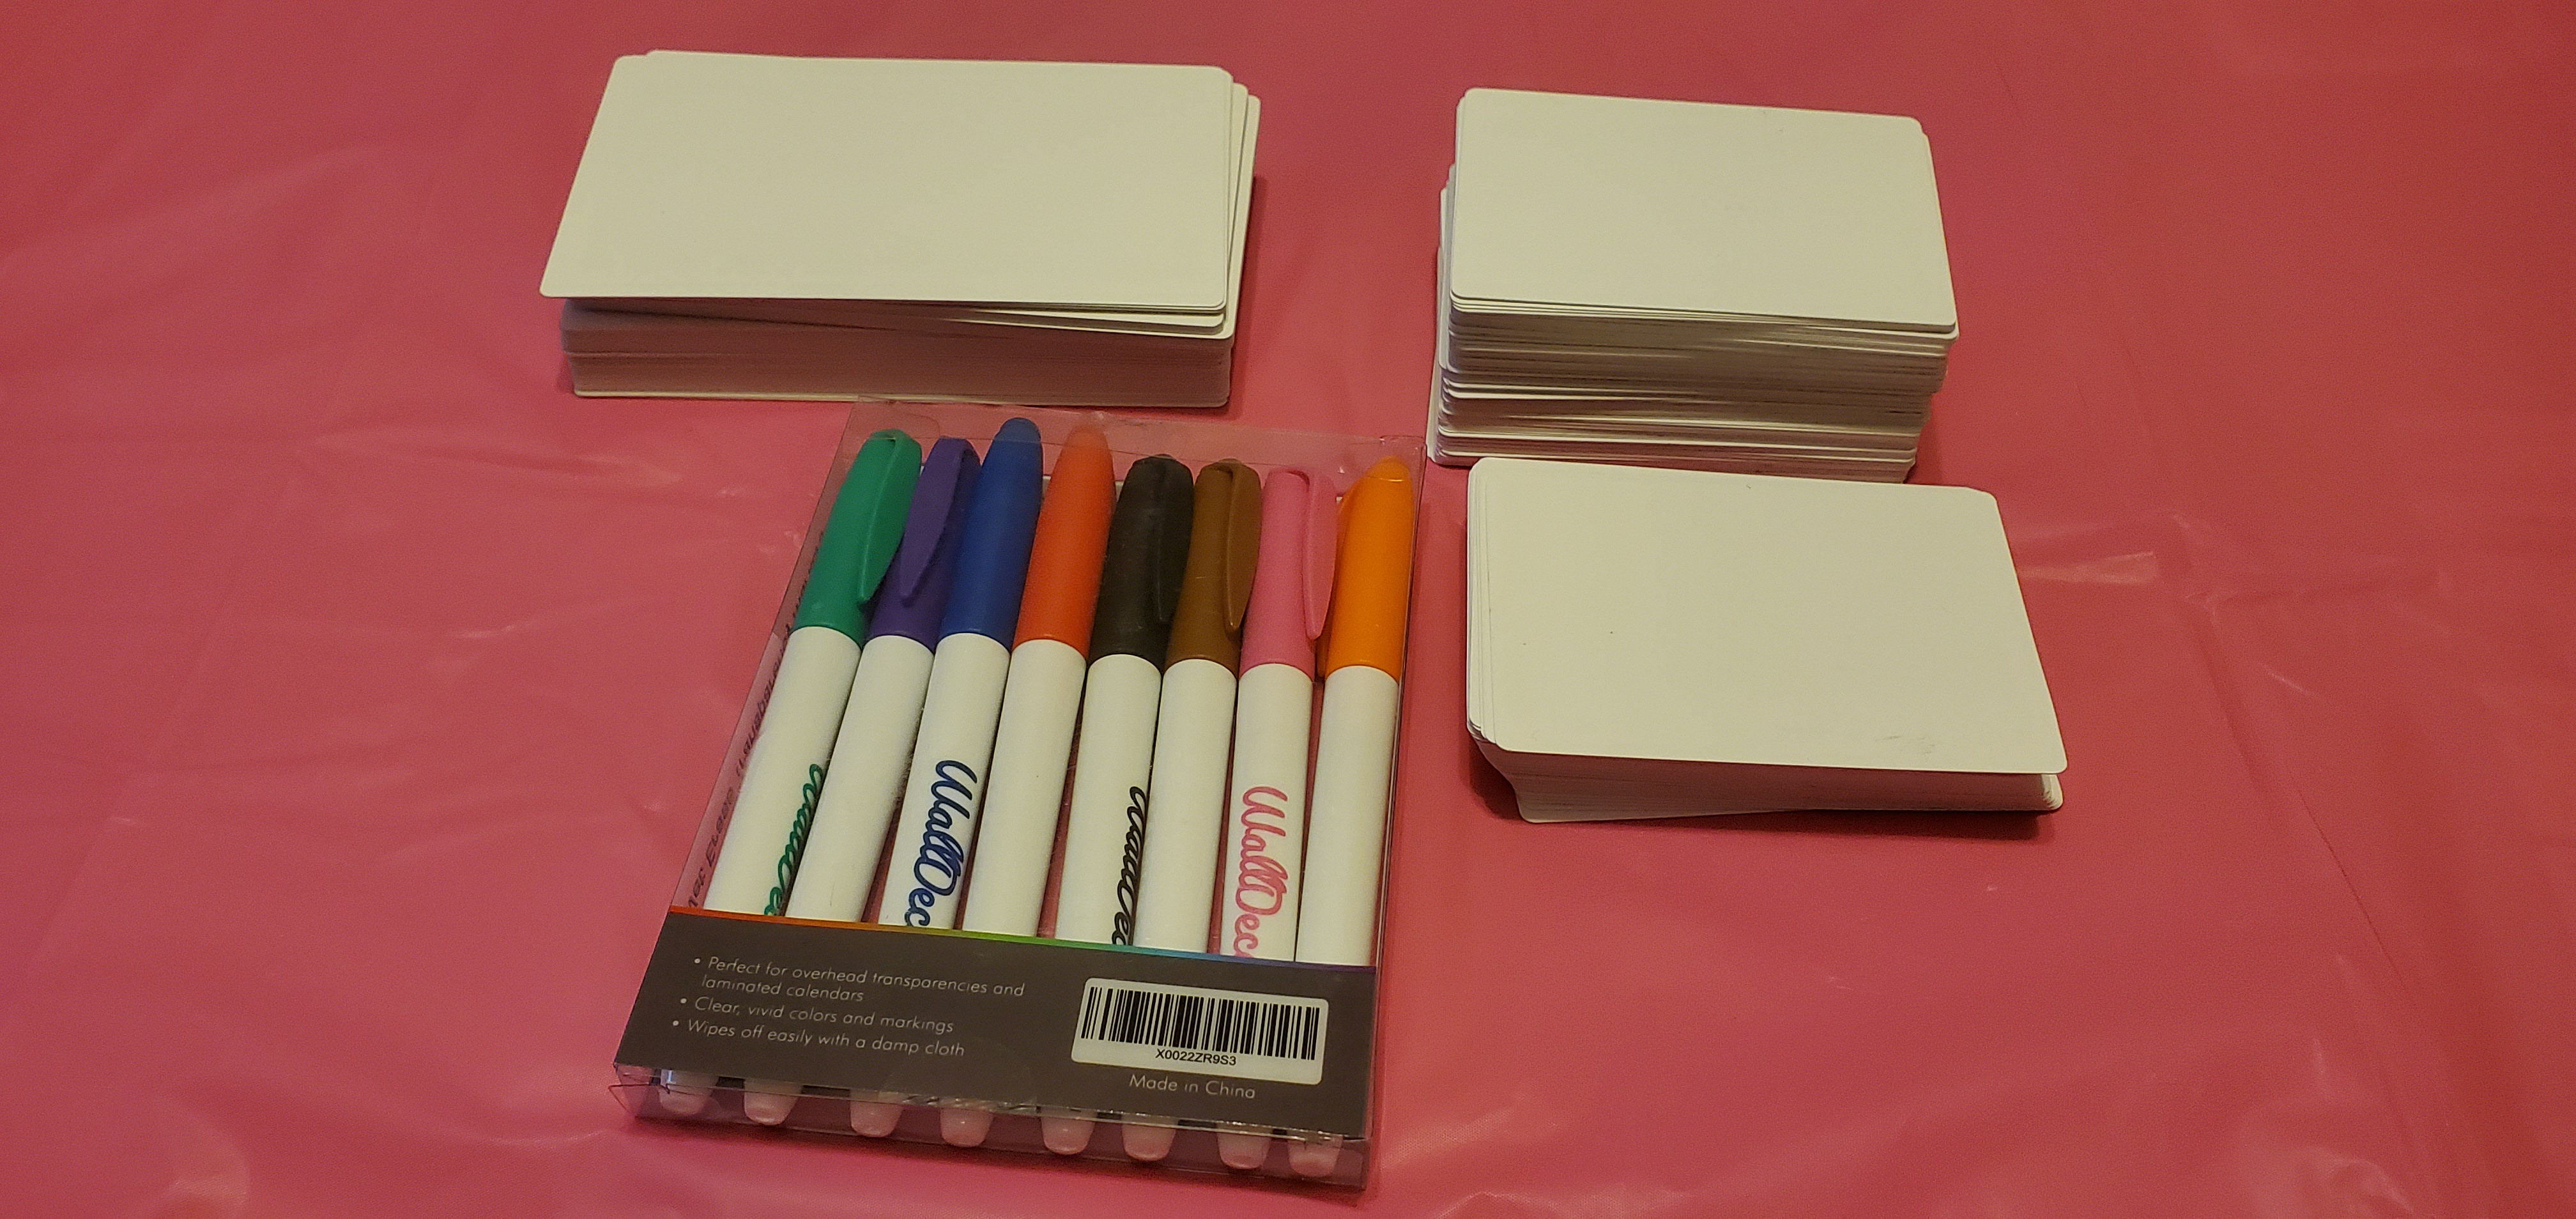 Dry erase index and poker cards and wet erase markers.